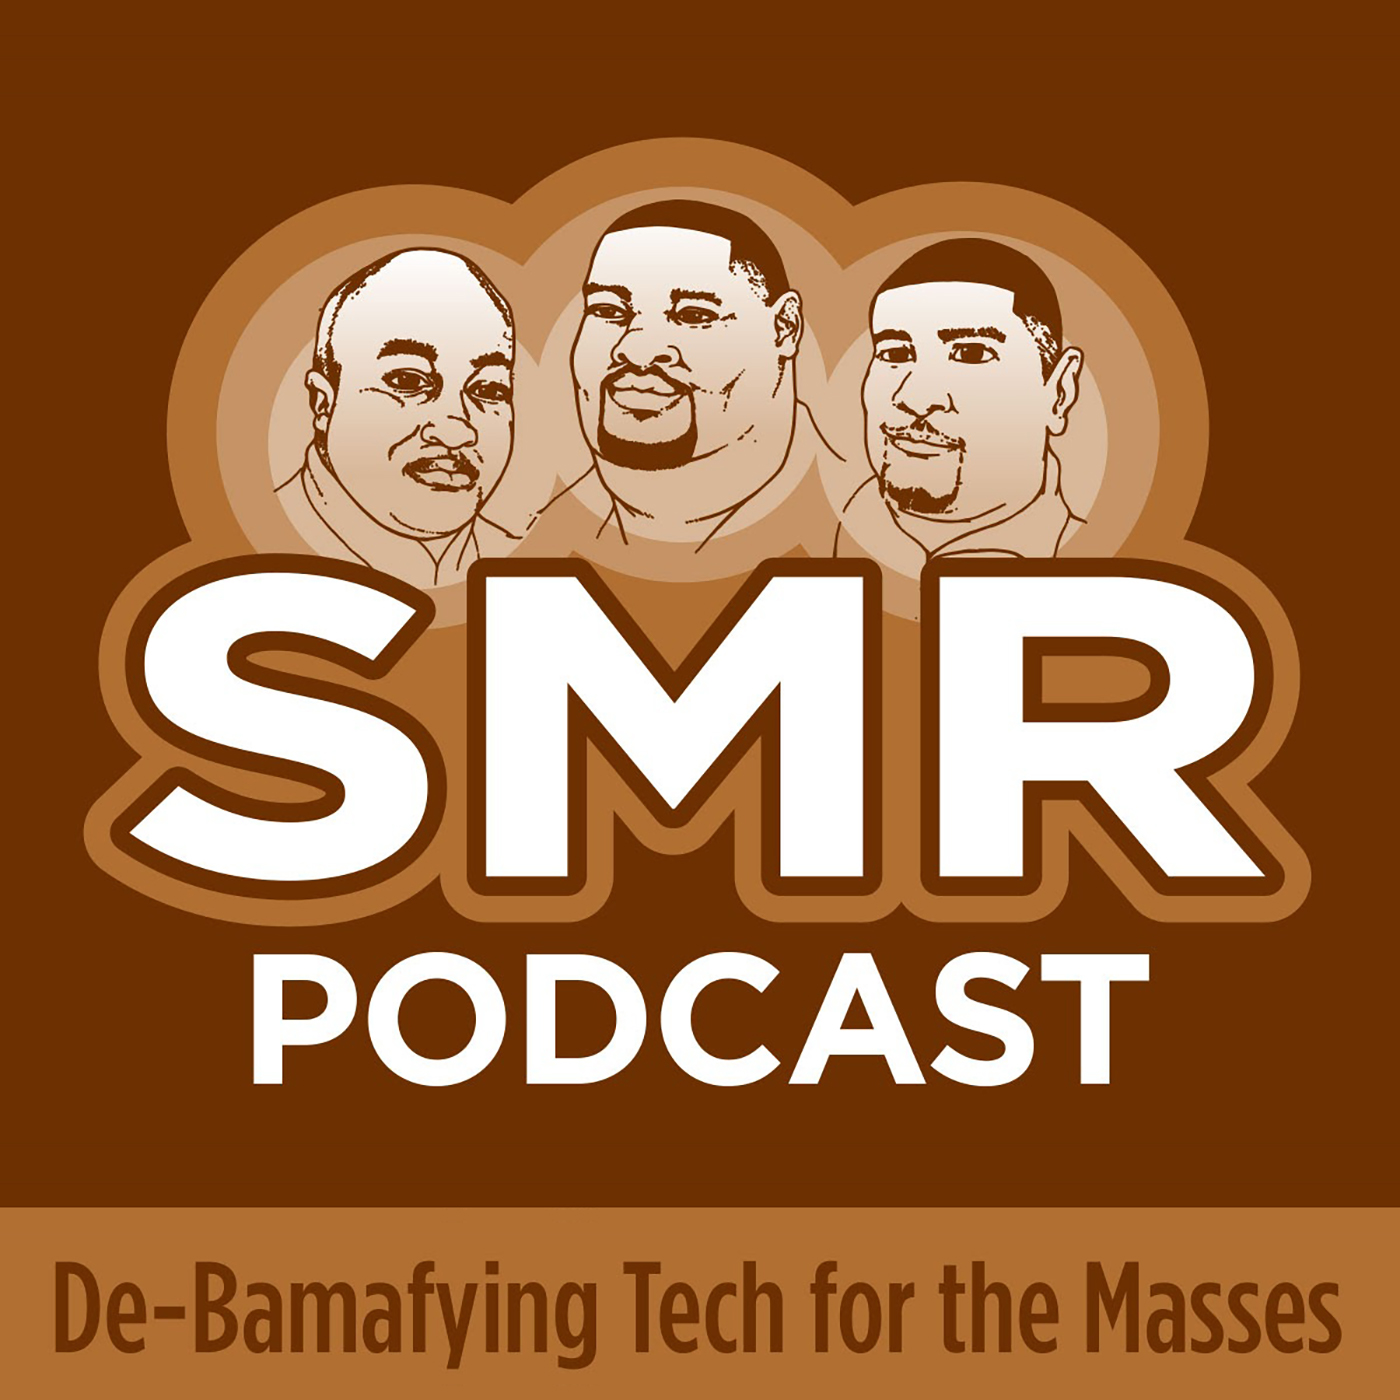 SMRpodcast #471: They Only Know My Face